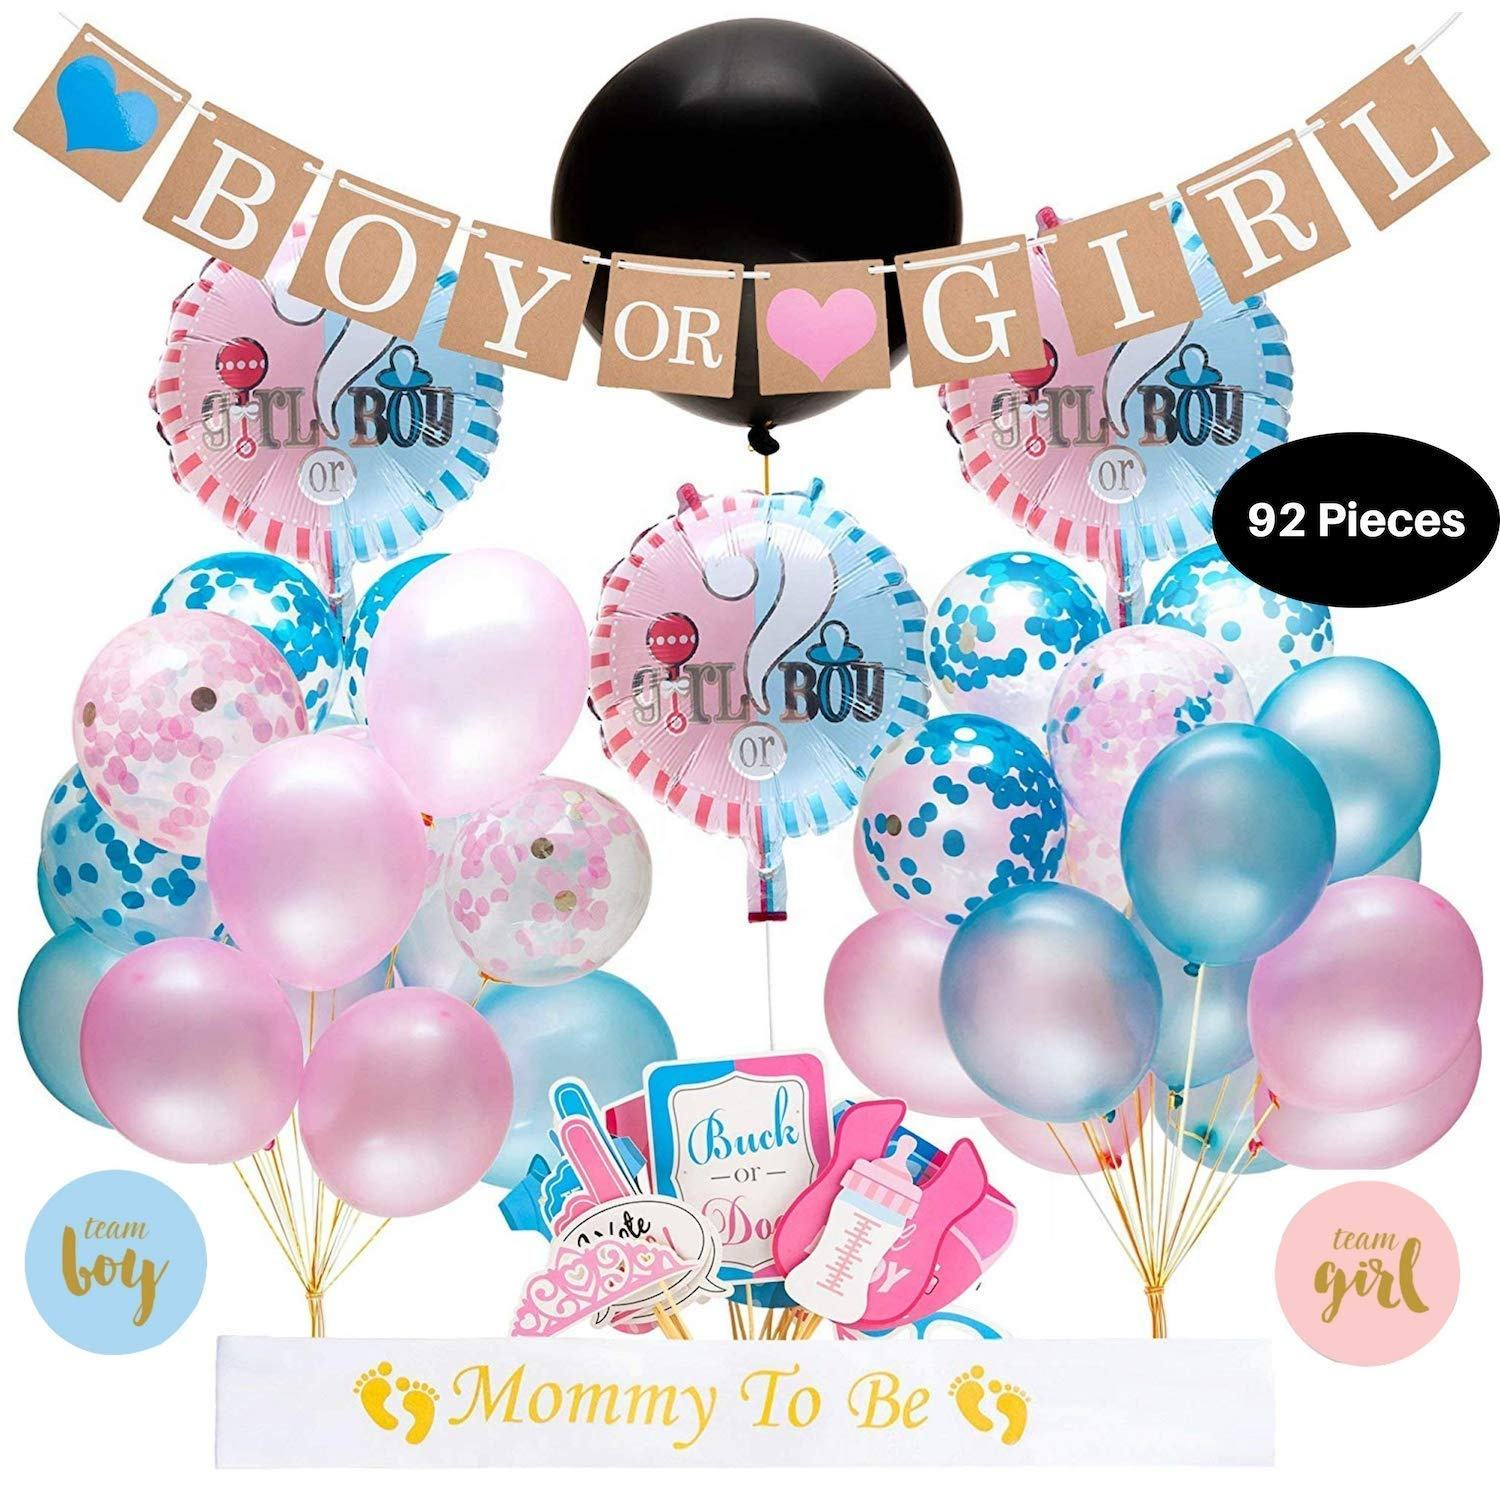 Boomwow Amazon Bestseller Geslacht Onthullen Confetti Ballonnen Jongen Of Meisje Photo Booth Props Party Decoration Baby Douche Set